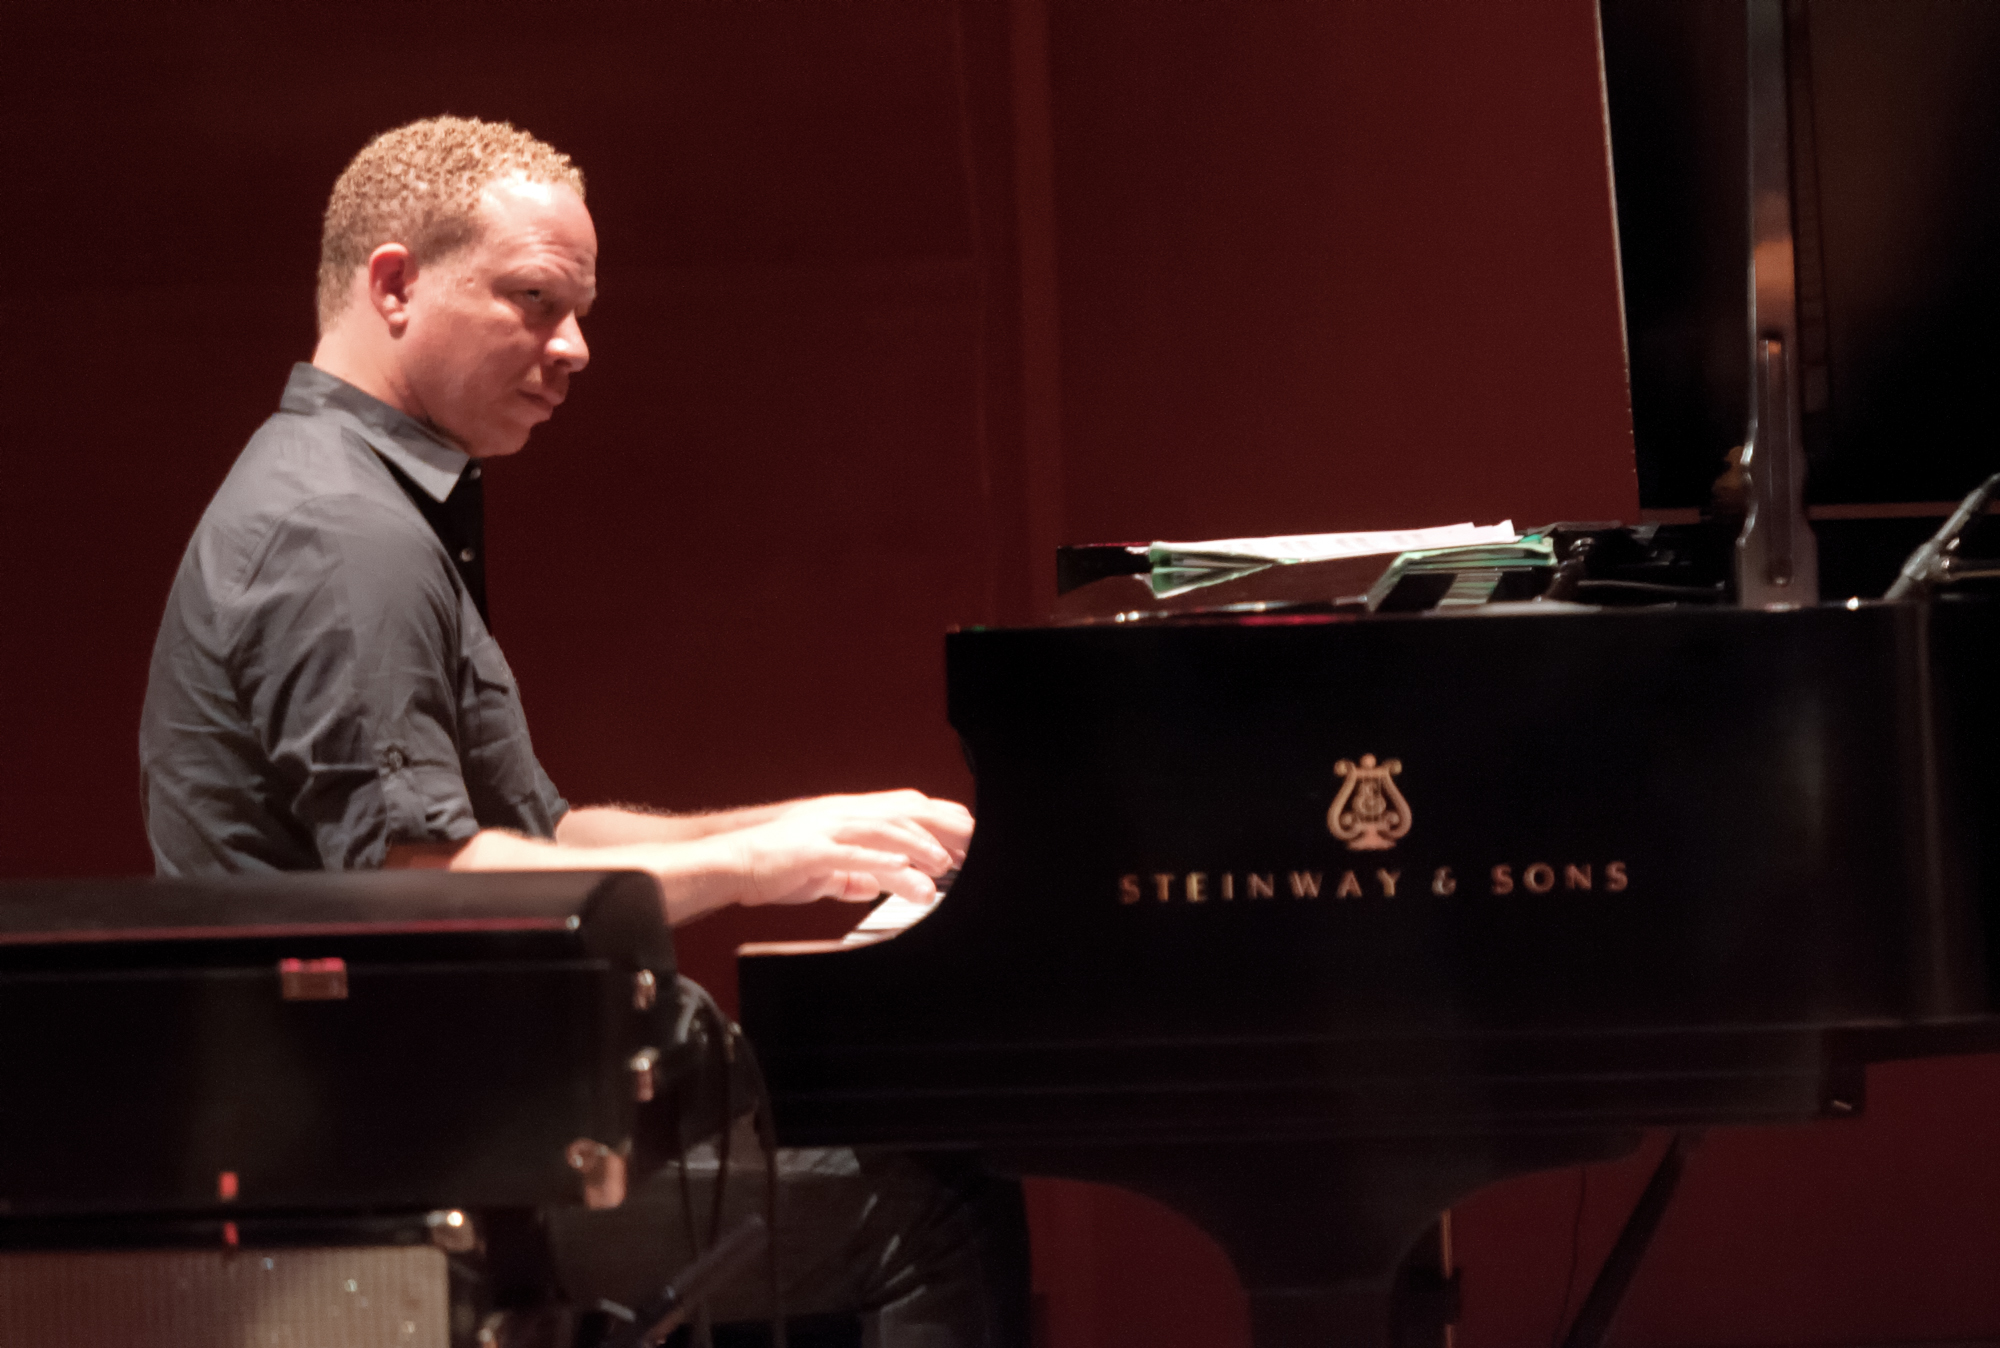 Craig Taborn Dave Holland And Prism At The Musical Instruments Museum (mim) In Phoenix